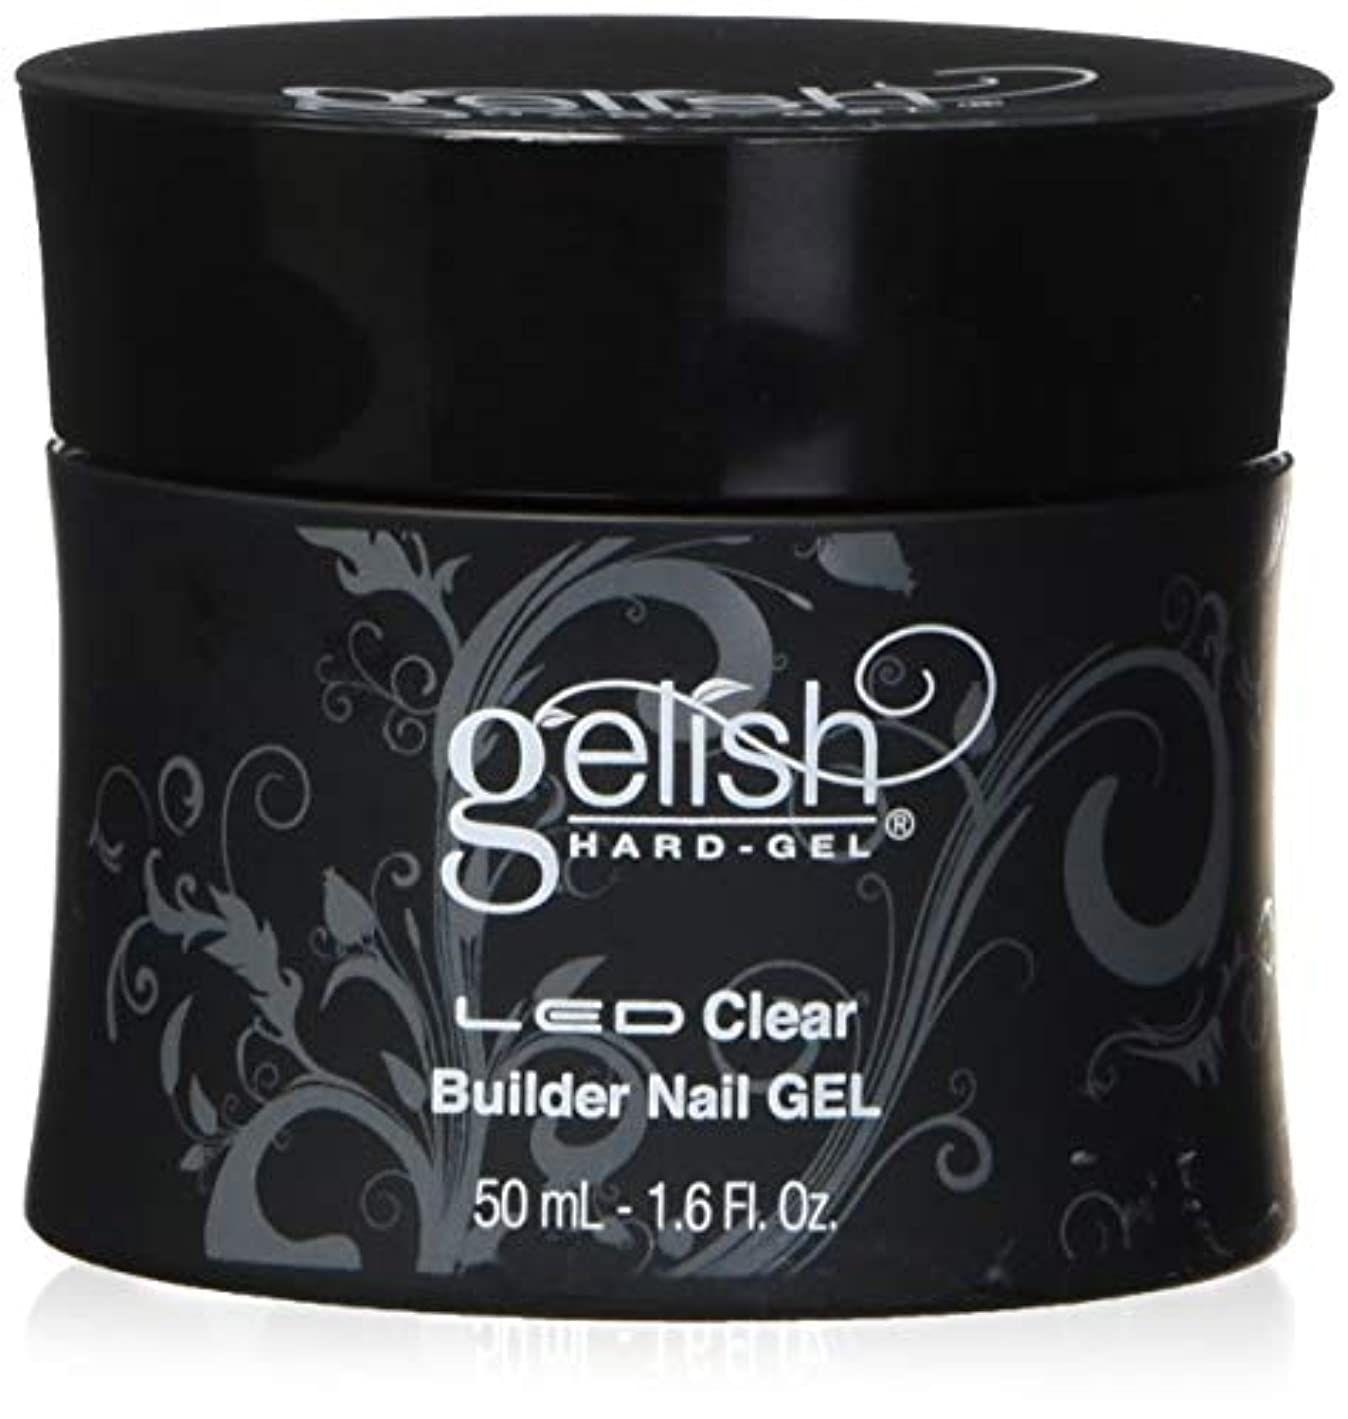 バランス影響付属品Harmony Gelish LED Hard Gel - Clear Builder - 1.6oz / 50ml